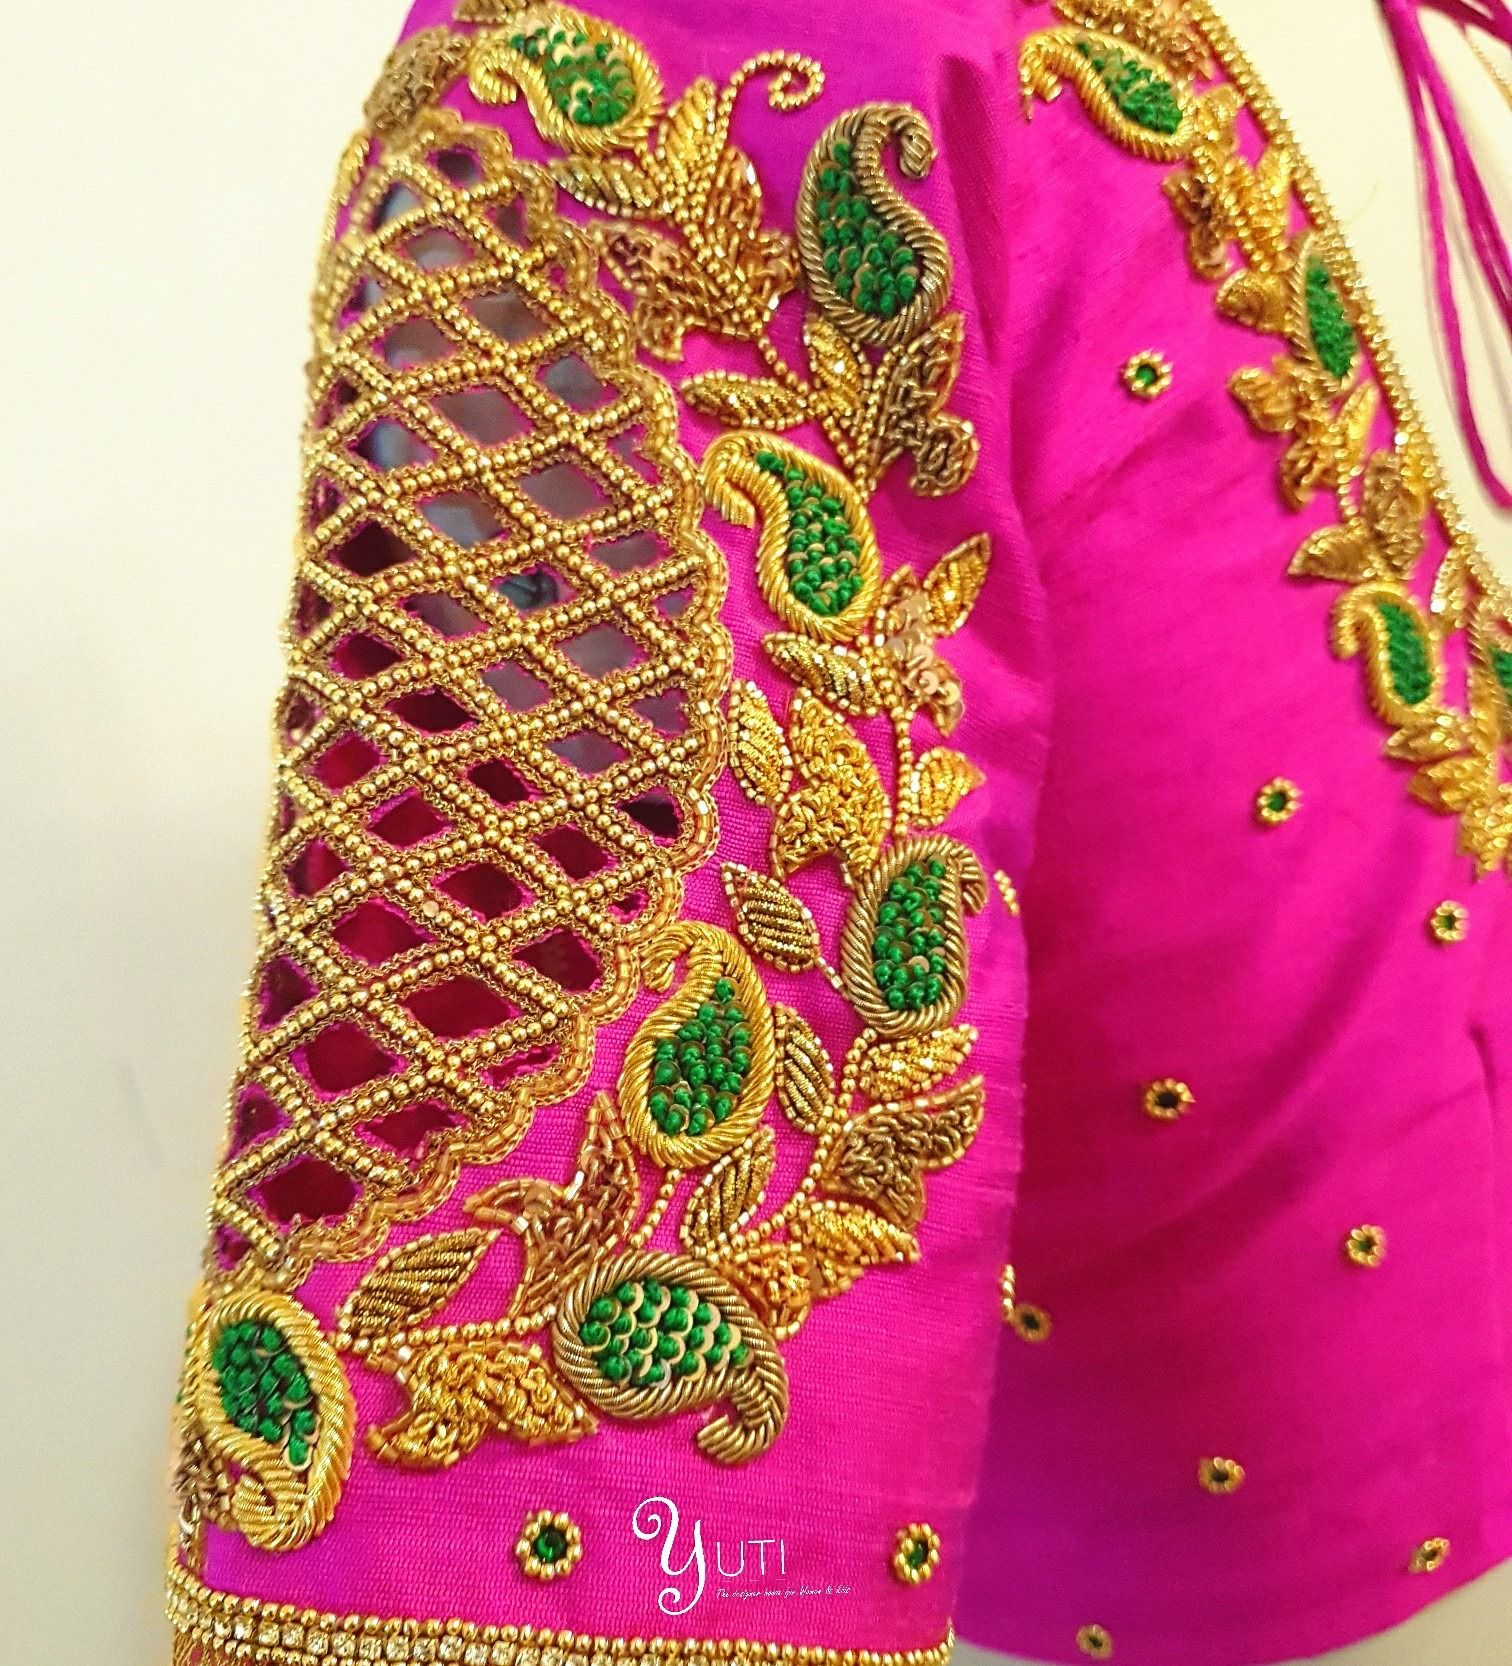 e19253088ae1f Cutwork embroidered blouse at YUTI. Beautiful pink color designer blouse  with floret lata design hand embroidery gold thread work and cut work.